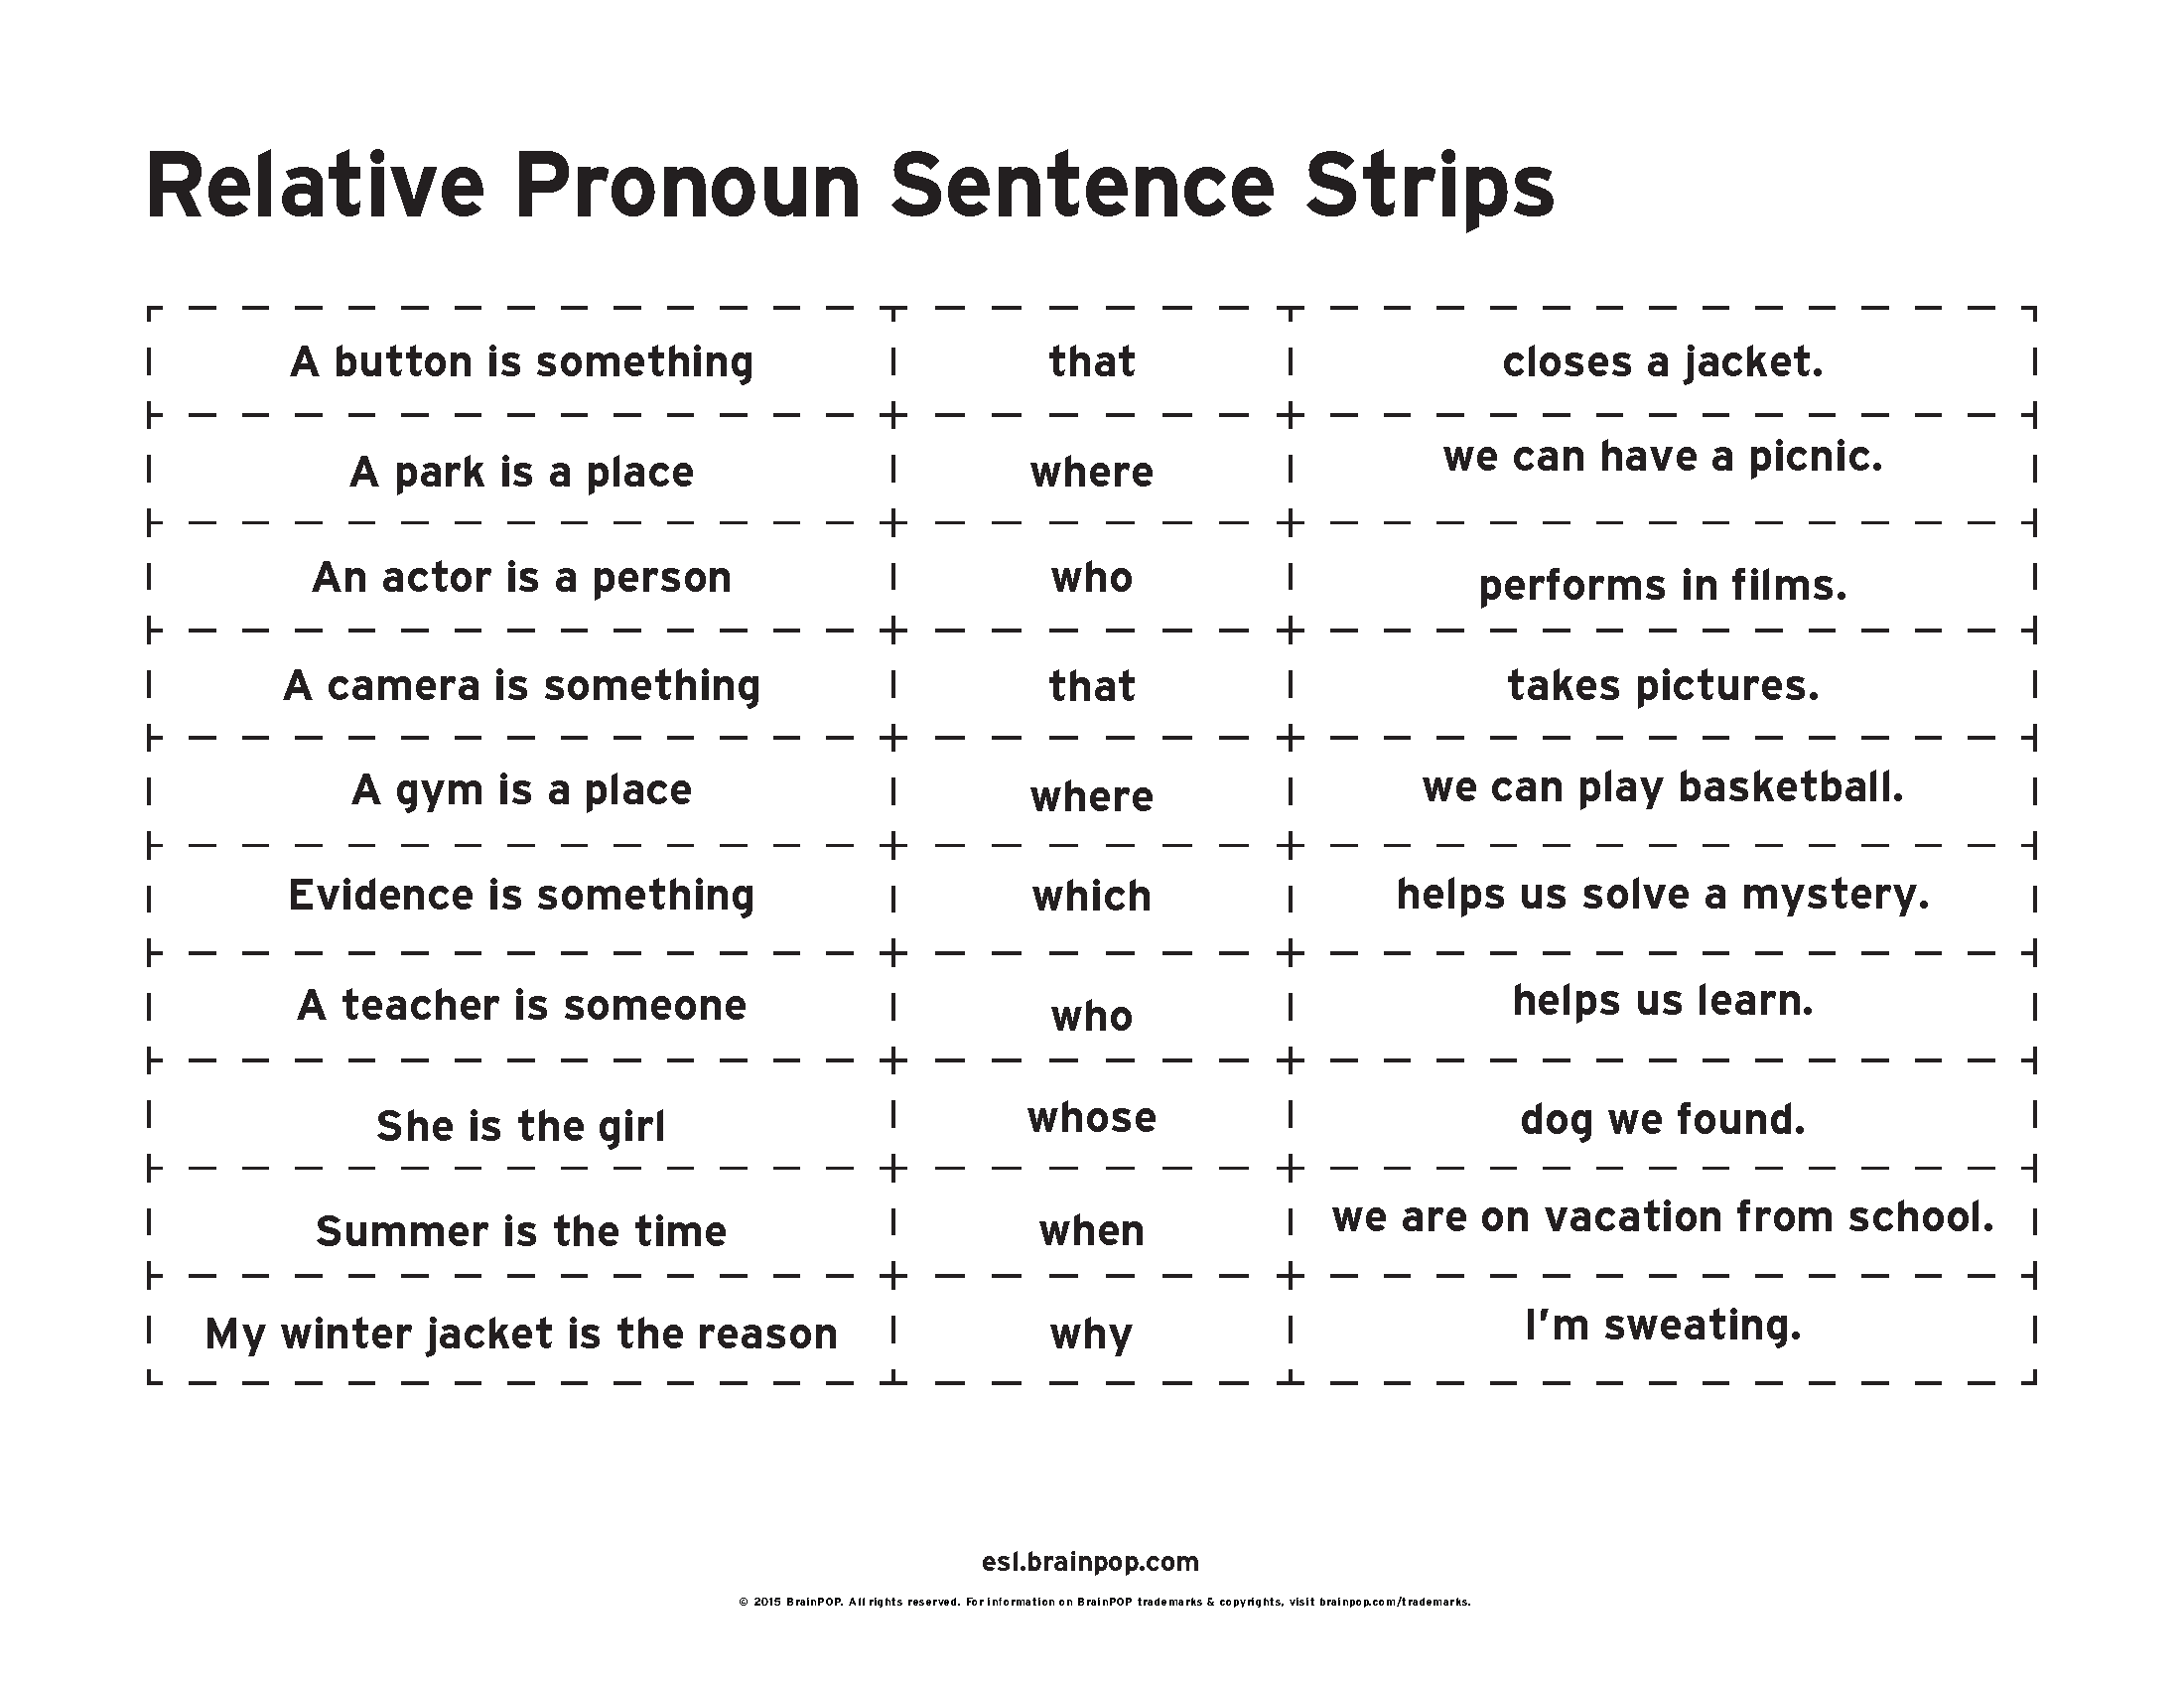 Relative Pronouns Sentence Strips With Images